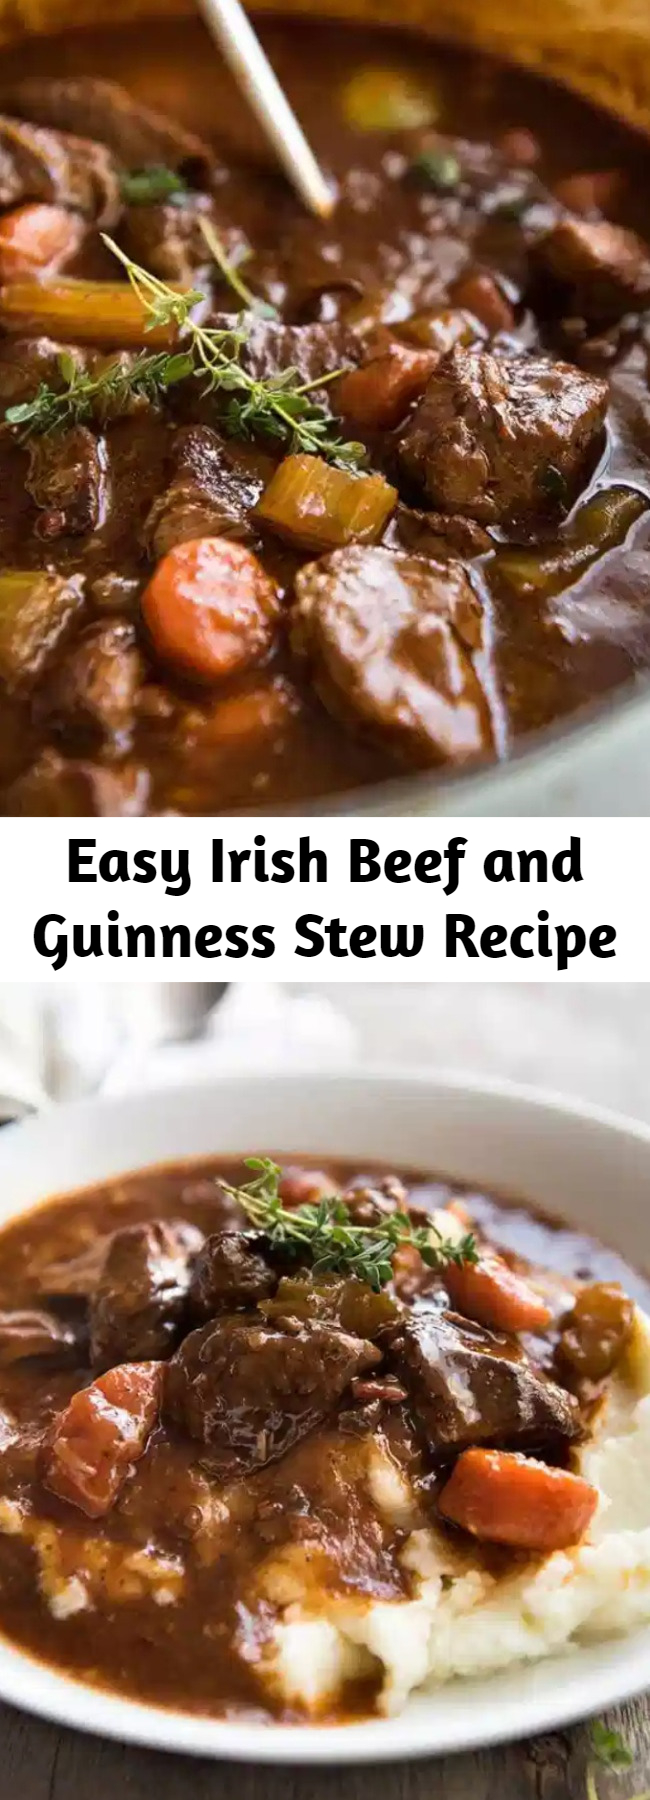 Easy Irish Beef and Guinness Stew Recipe - There's no greater comfort food than a hearty stew. And the iconic Irish Beef and Guinness Stew might be the king of them all! The Guinness Beer is the secret weapon ingredient in this! Guinness Beer gives the sauce an incredible rich, deep complex flavour, and the beef is fall-apart tender.